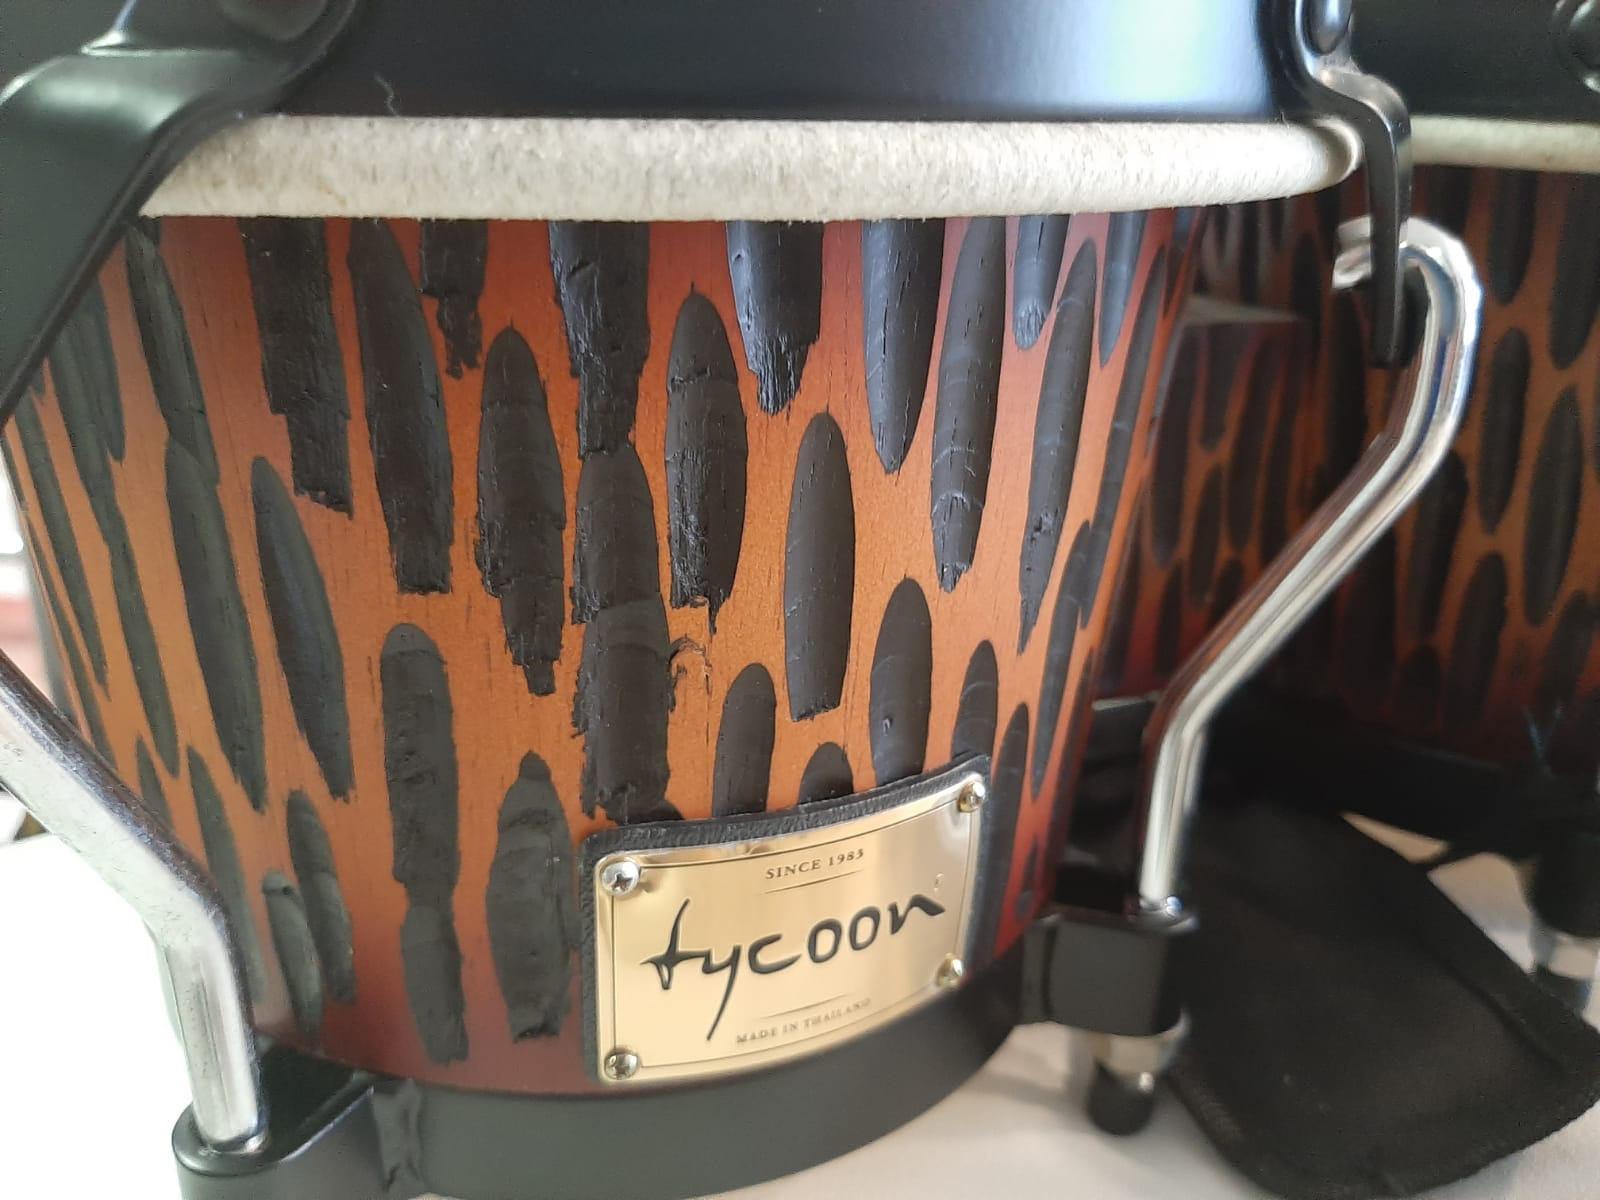 Tycoon 7'' & 8½'' Supremo Select Series Bongos - Chiseled Orange Finish